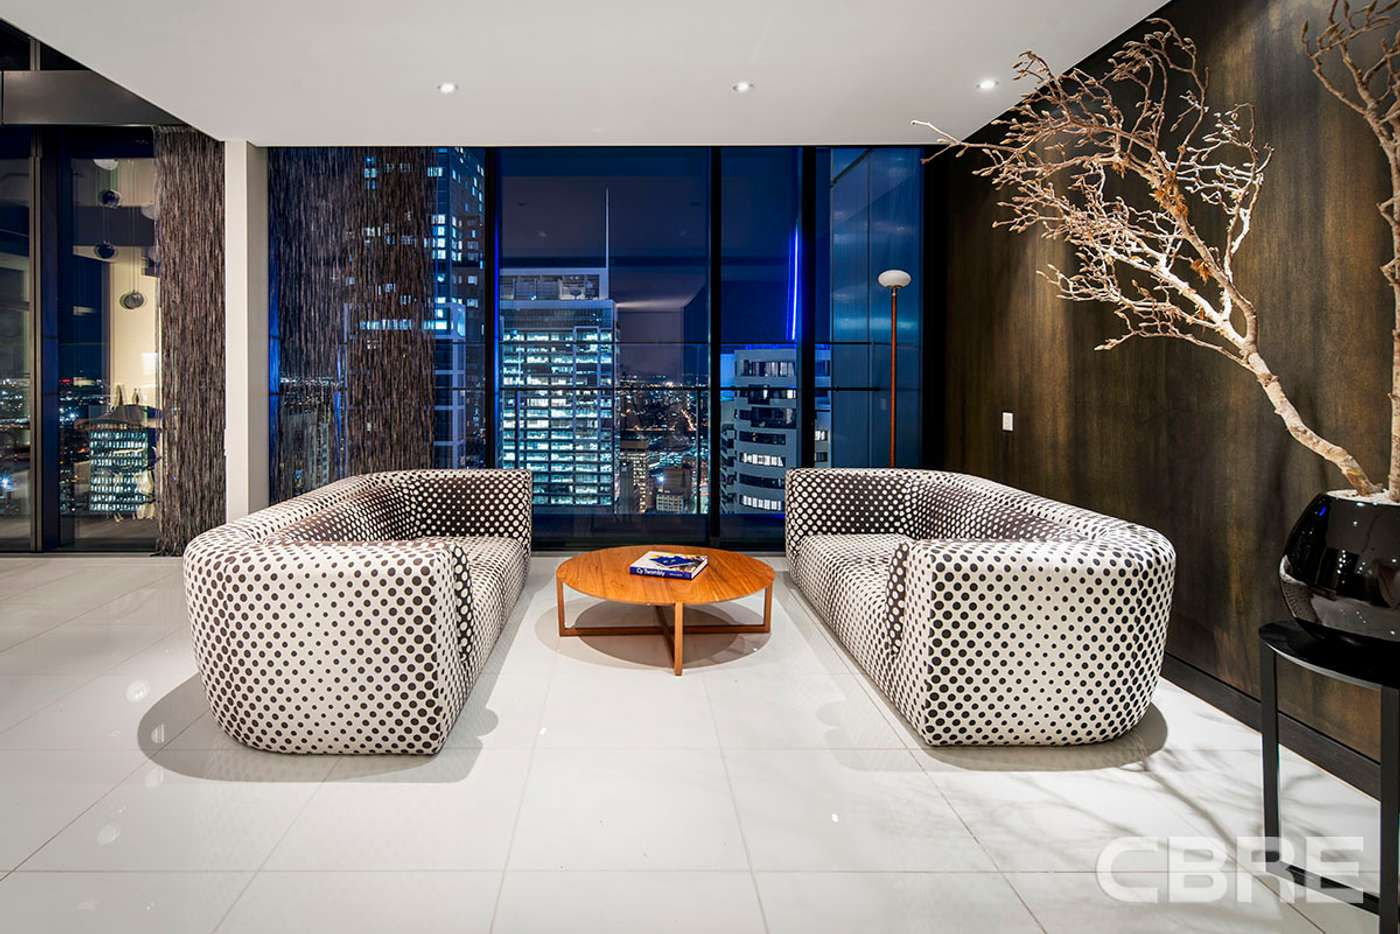 Fifth view of Homely apartment listing, 5406/101 Bathurst, Sydney NSW 2000